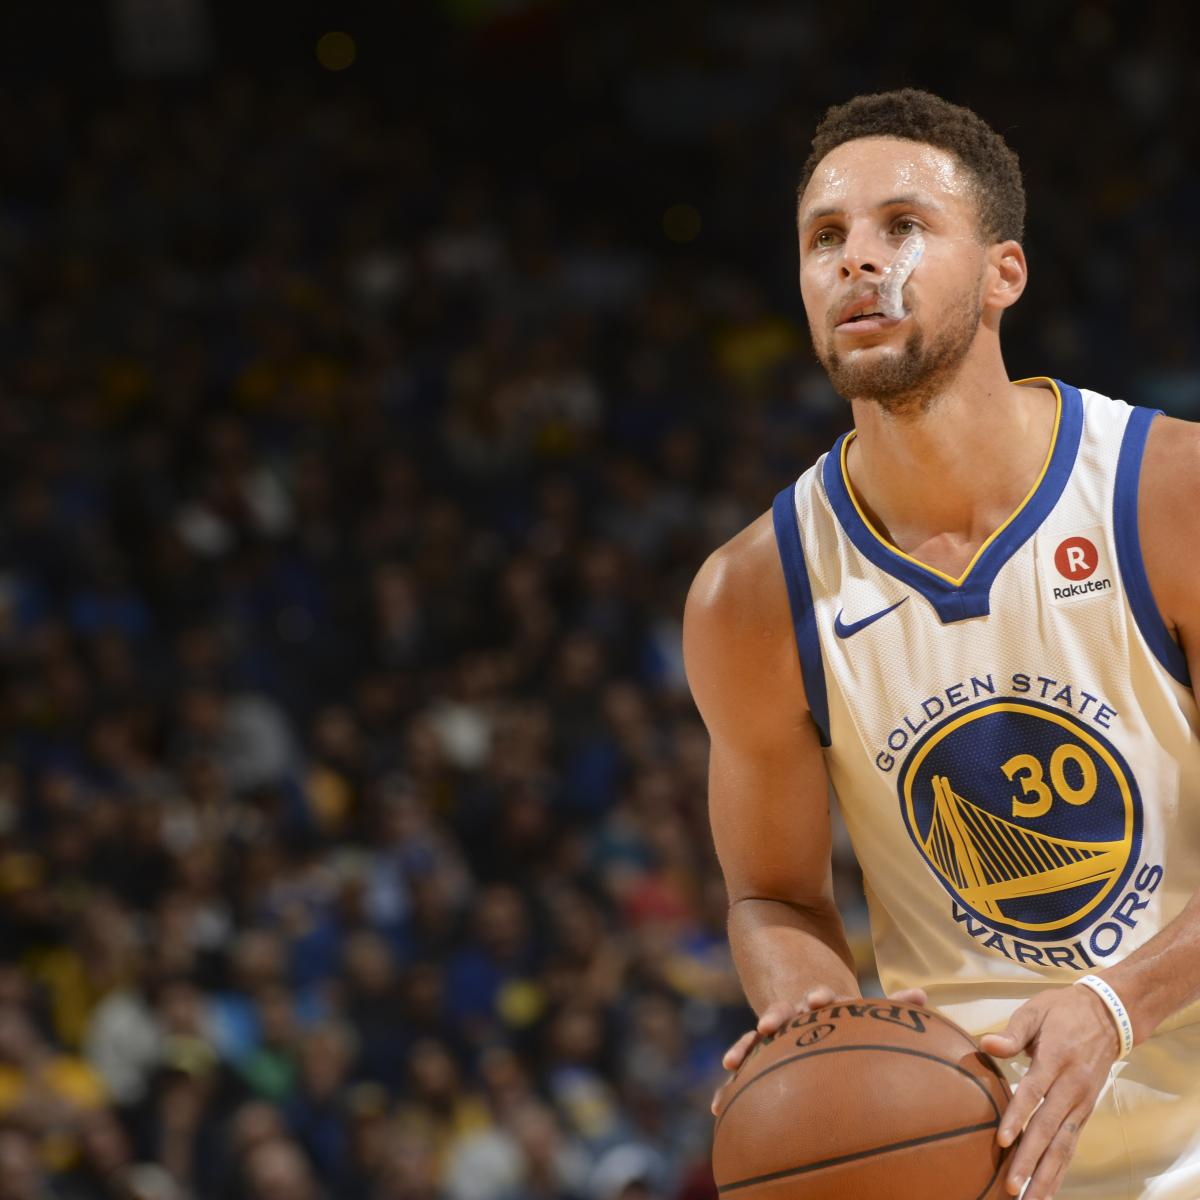 Warriors Come Out To Play Bleacher Report: Golden State Warriors On Pace For Best Offensive Season In